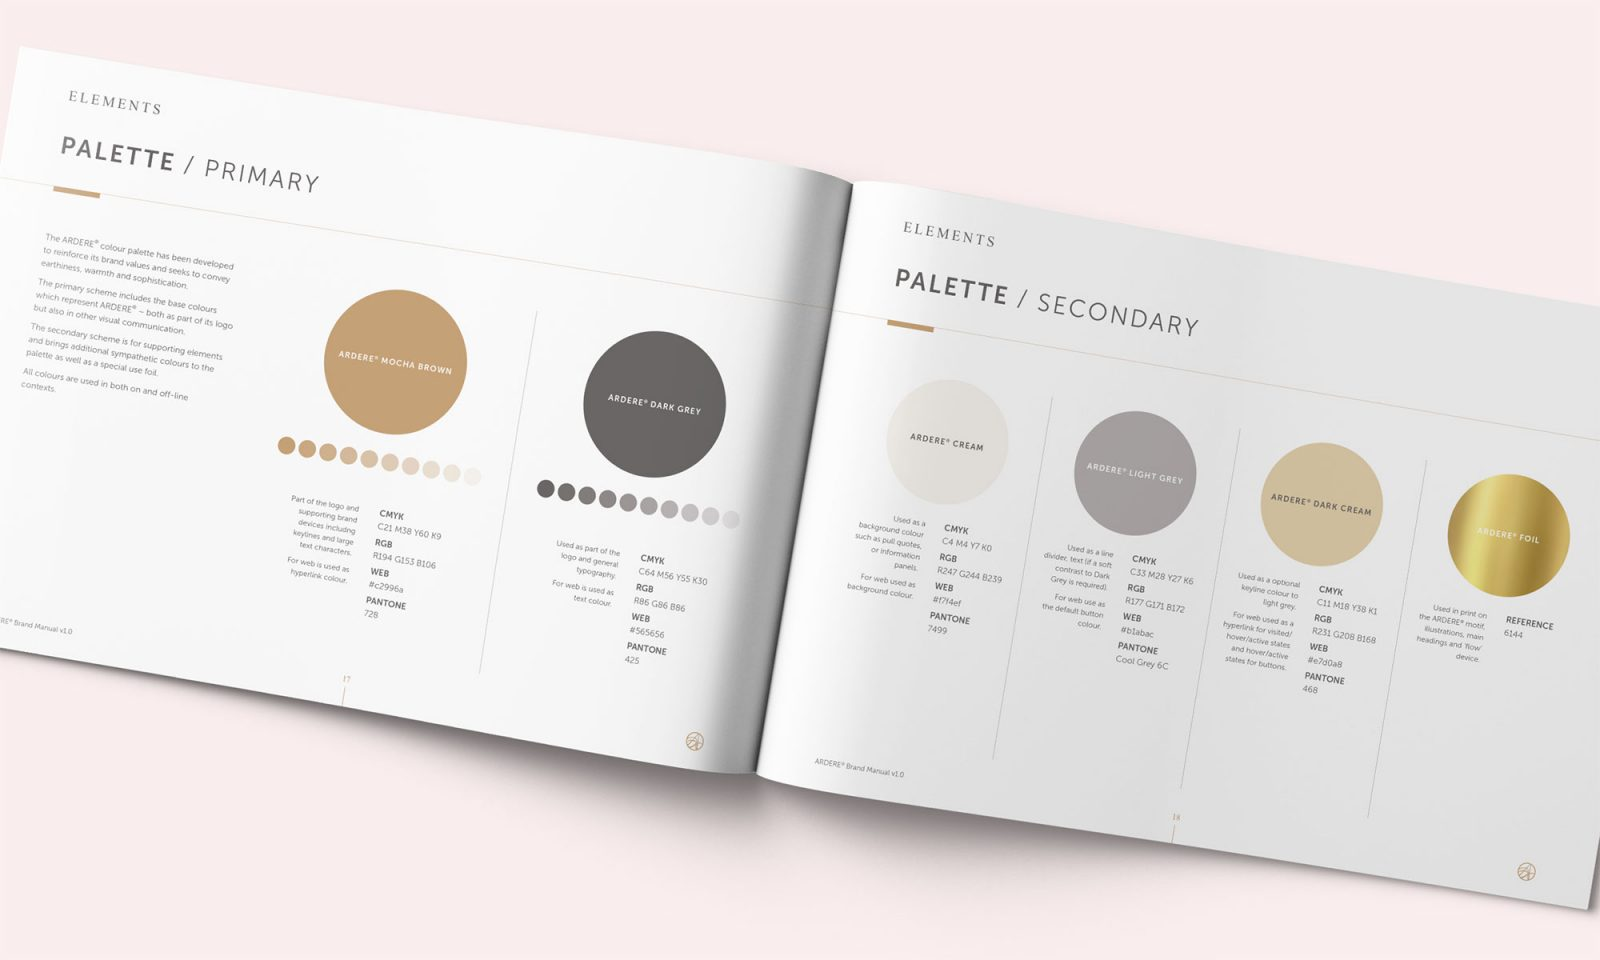 Ardere brand manual spread showing palette